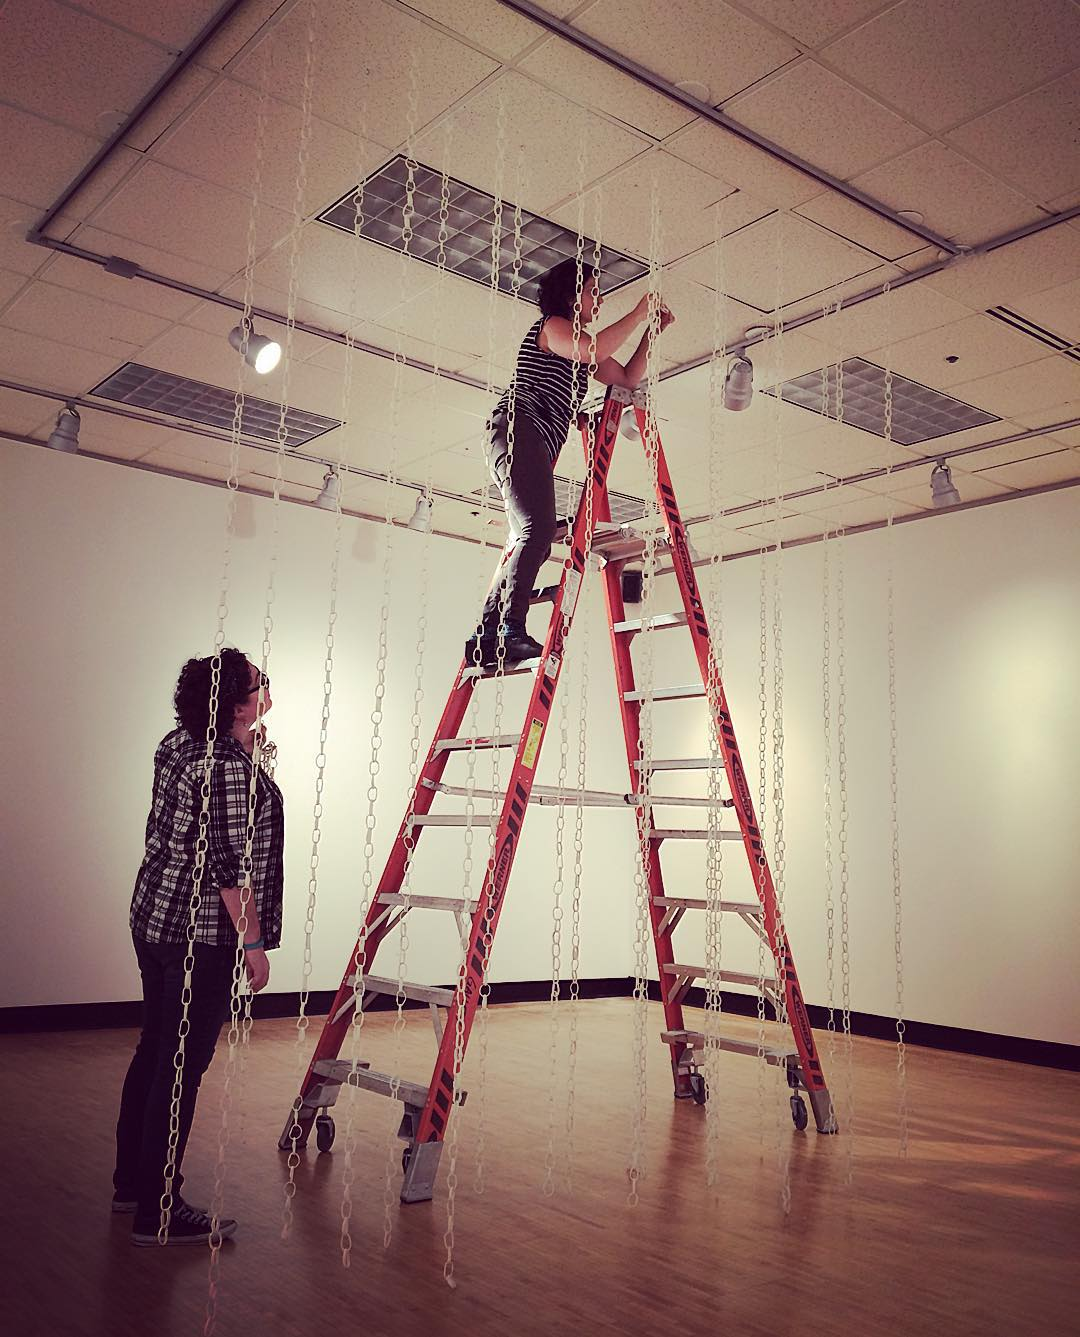 Installing Boundless with Lauren Herzak-Bauman, Blake Williams, and Katy Ragsdale